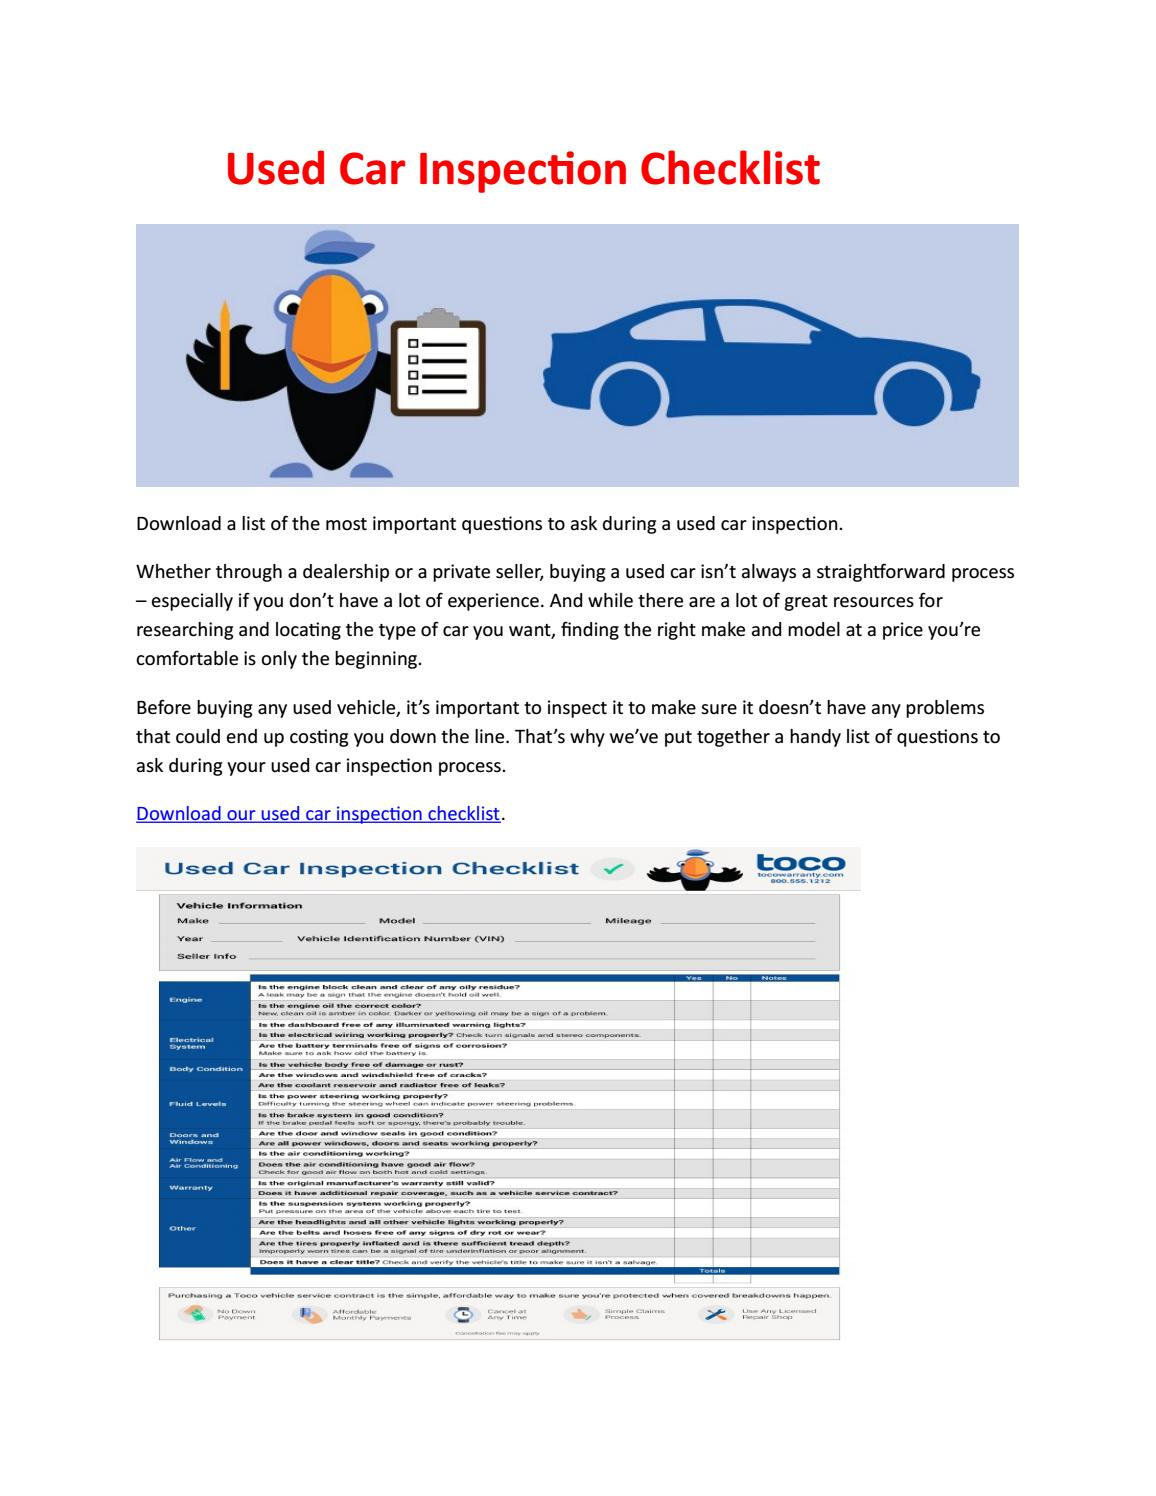 Questions To Ask When Buying A Used Car >> Used Car Inspection Checklist By Steve Parker Issuu